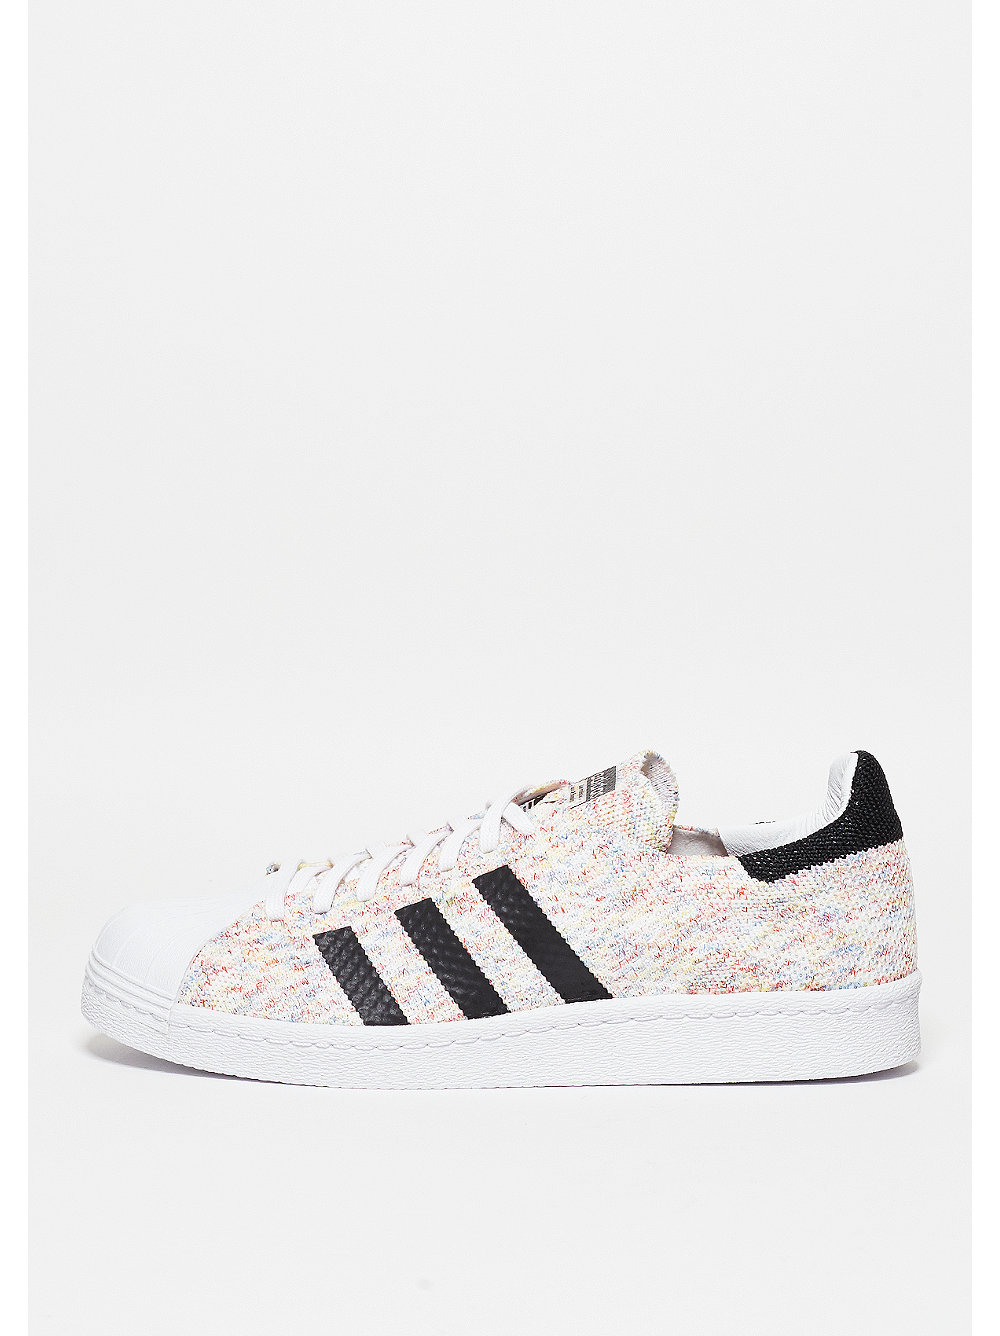 adidas Superstar 80s Primeknit white-white-core black